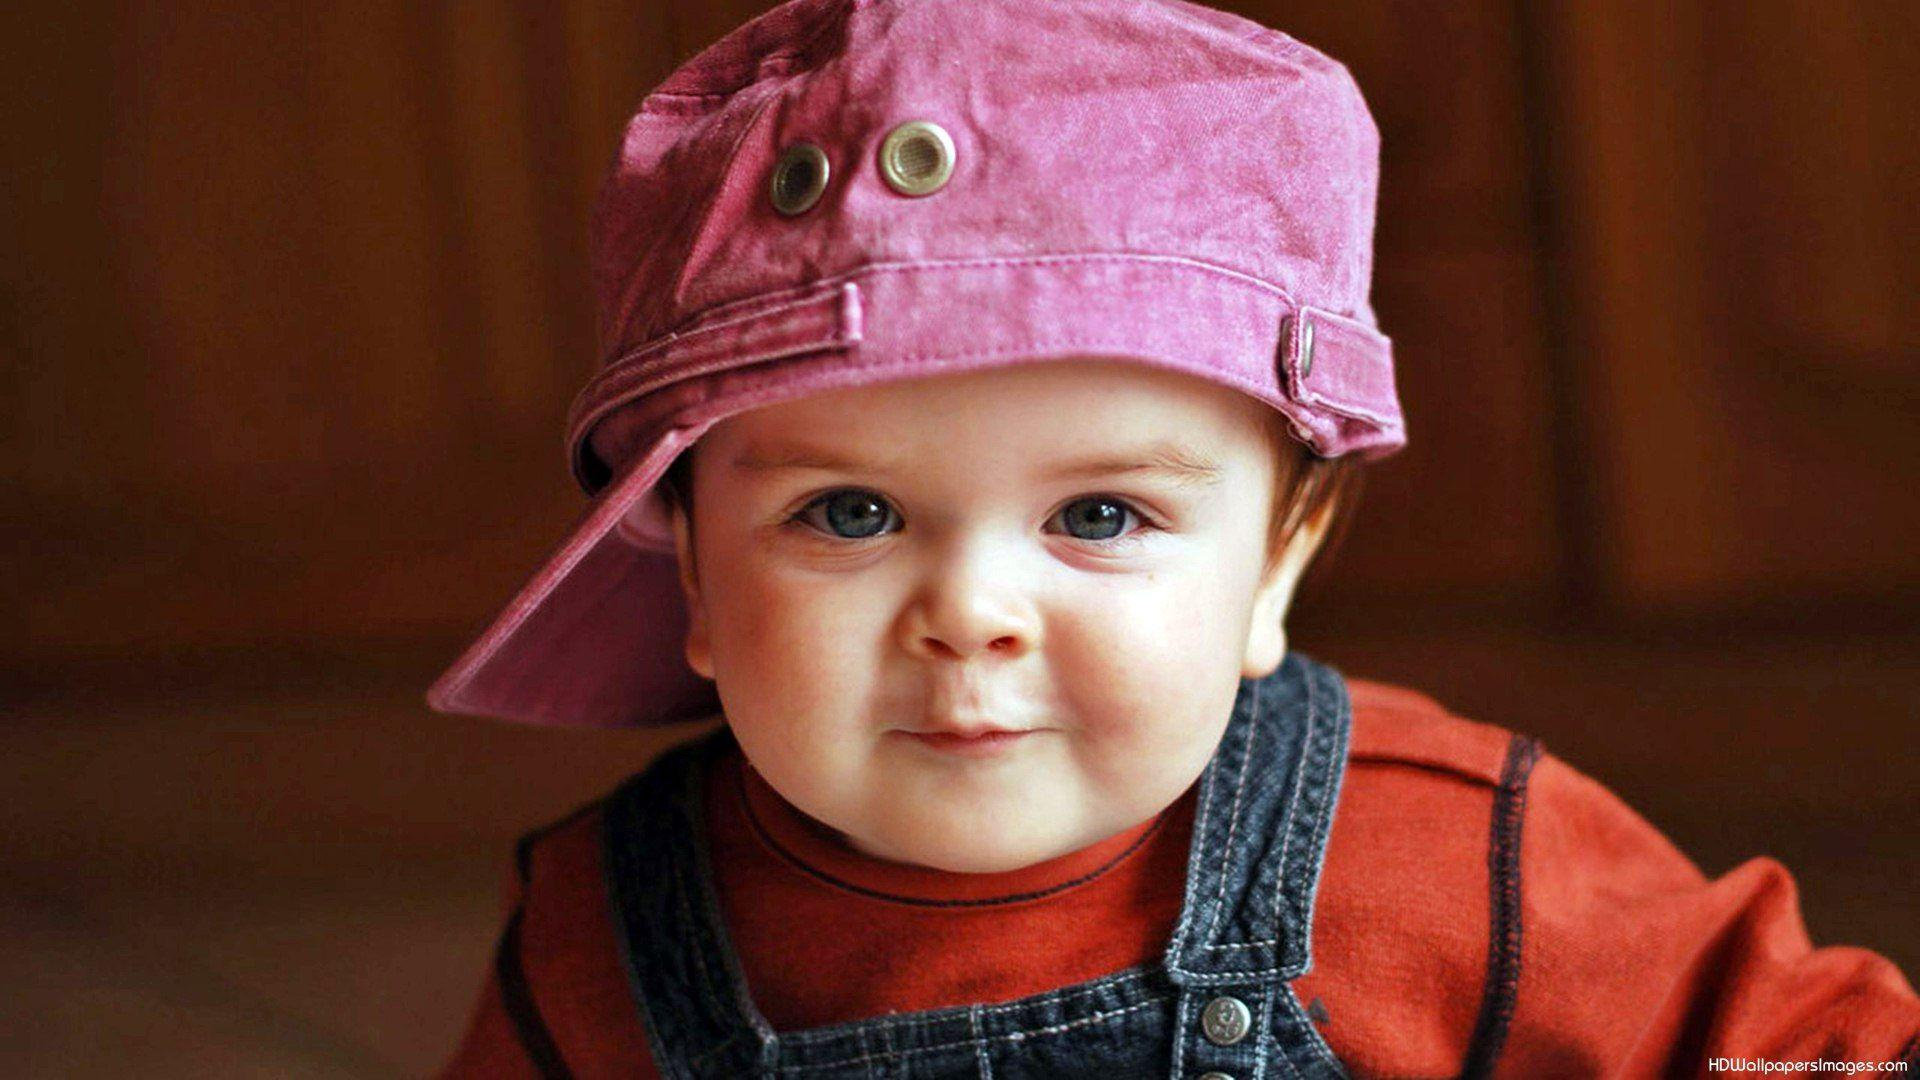 Cute Baby Boys HD wallpapers beautiful pictures 2016 - 2017